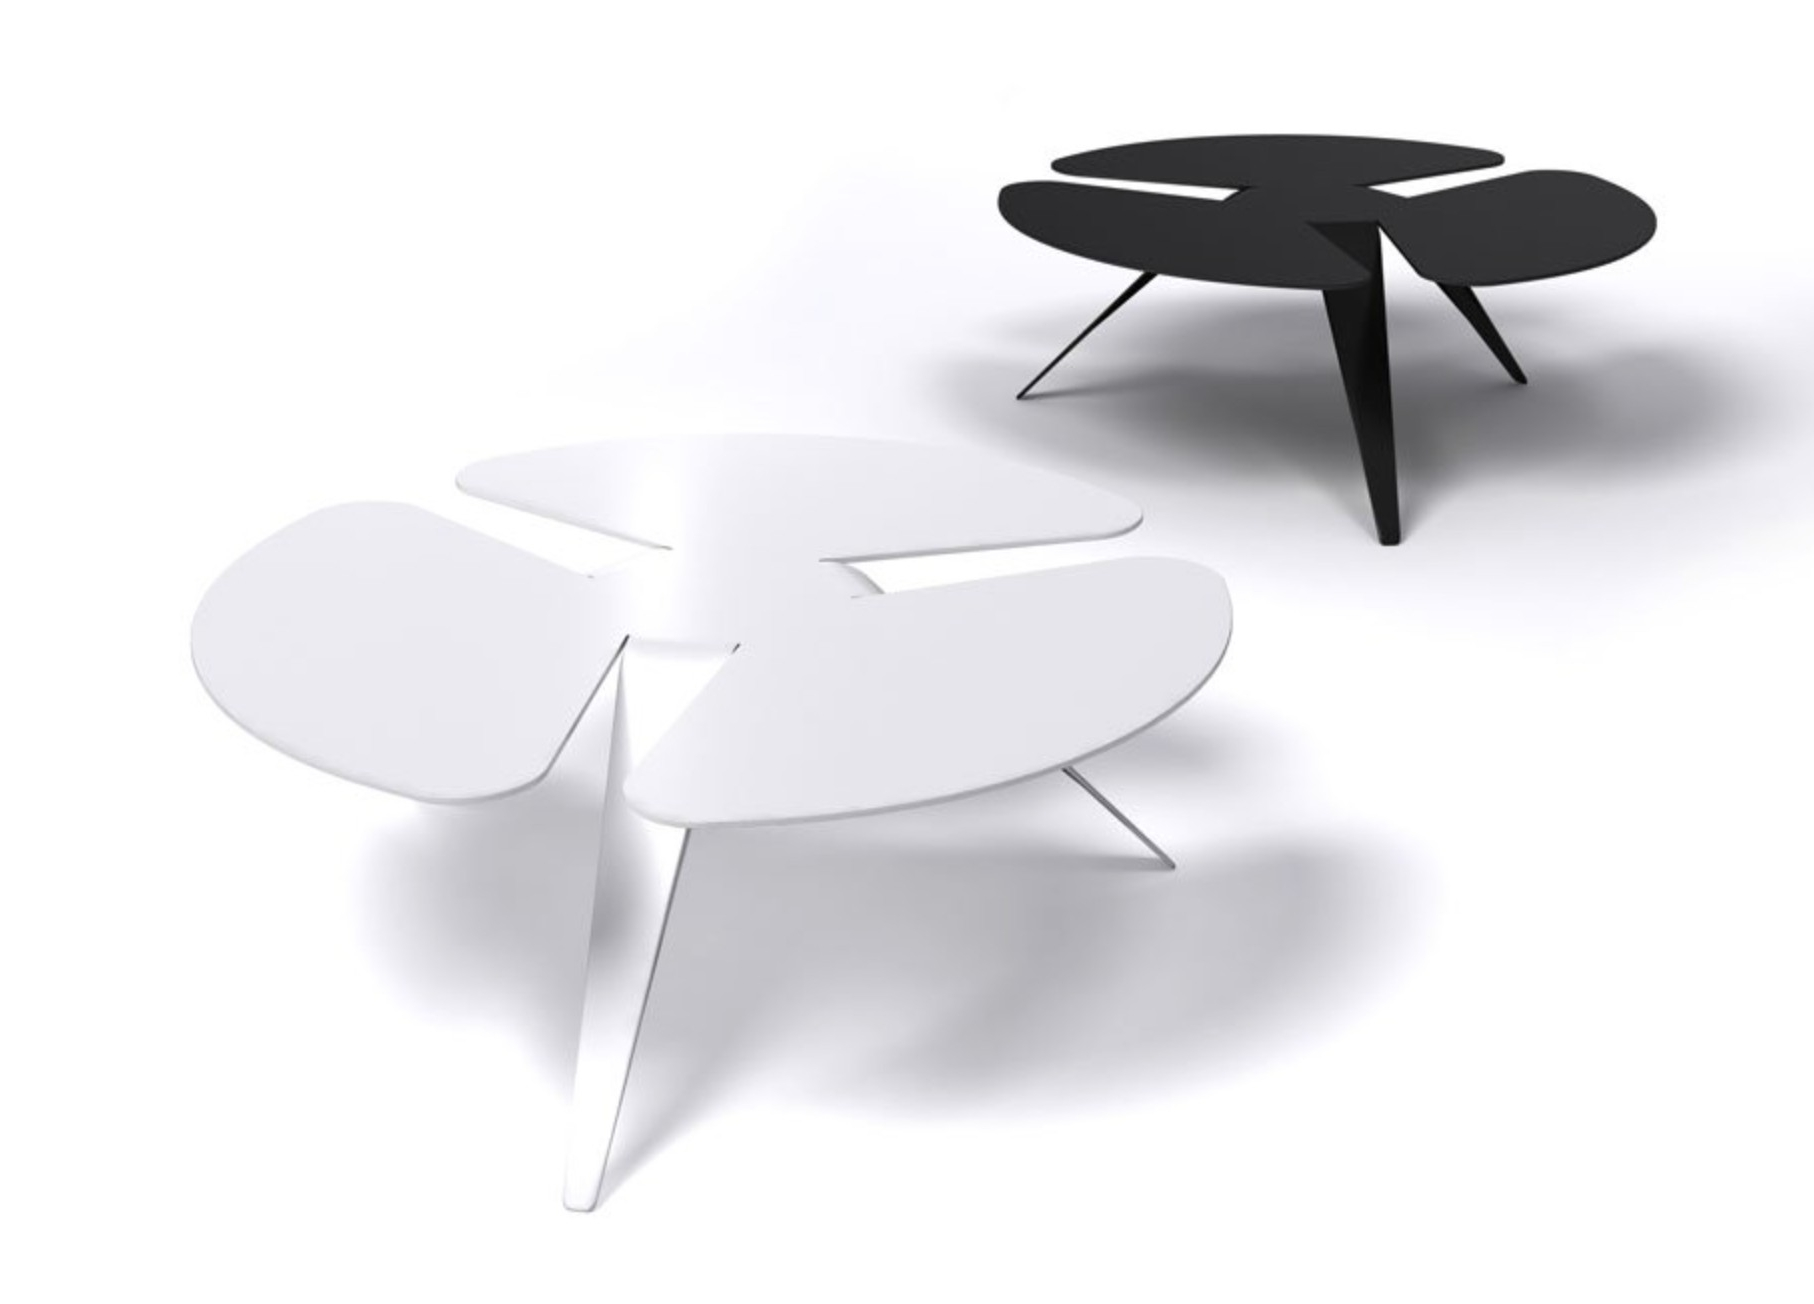 2018 Potomac Adjustable Coffee Tables Throughout 11 Lovely Metal Coffee Table Sets (View 8 of 20)